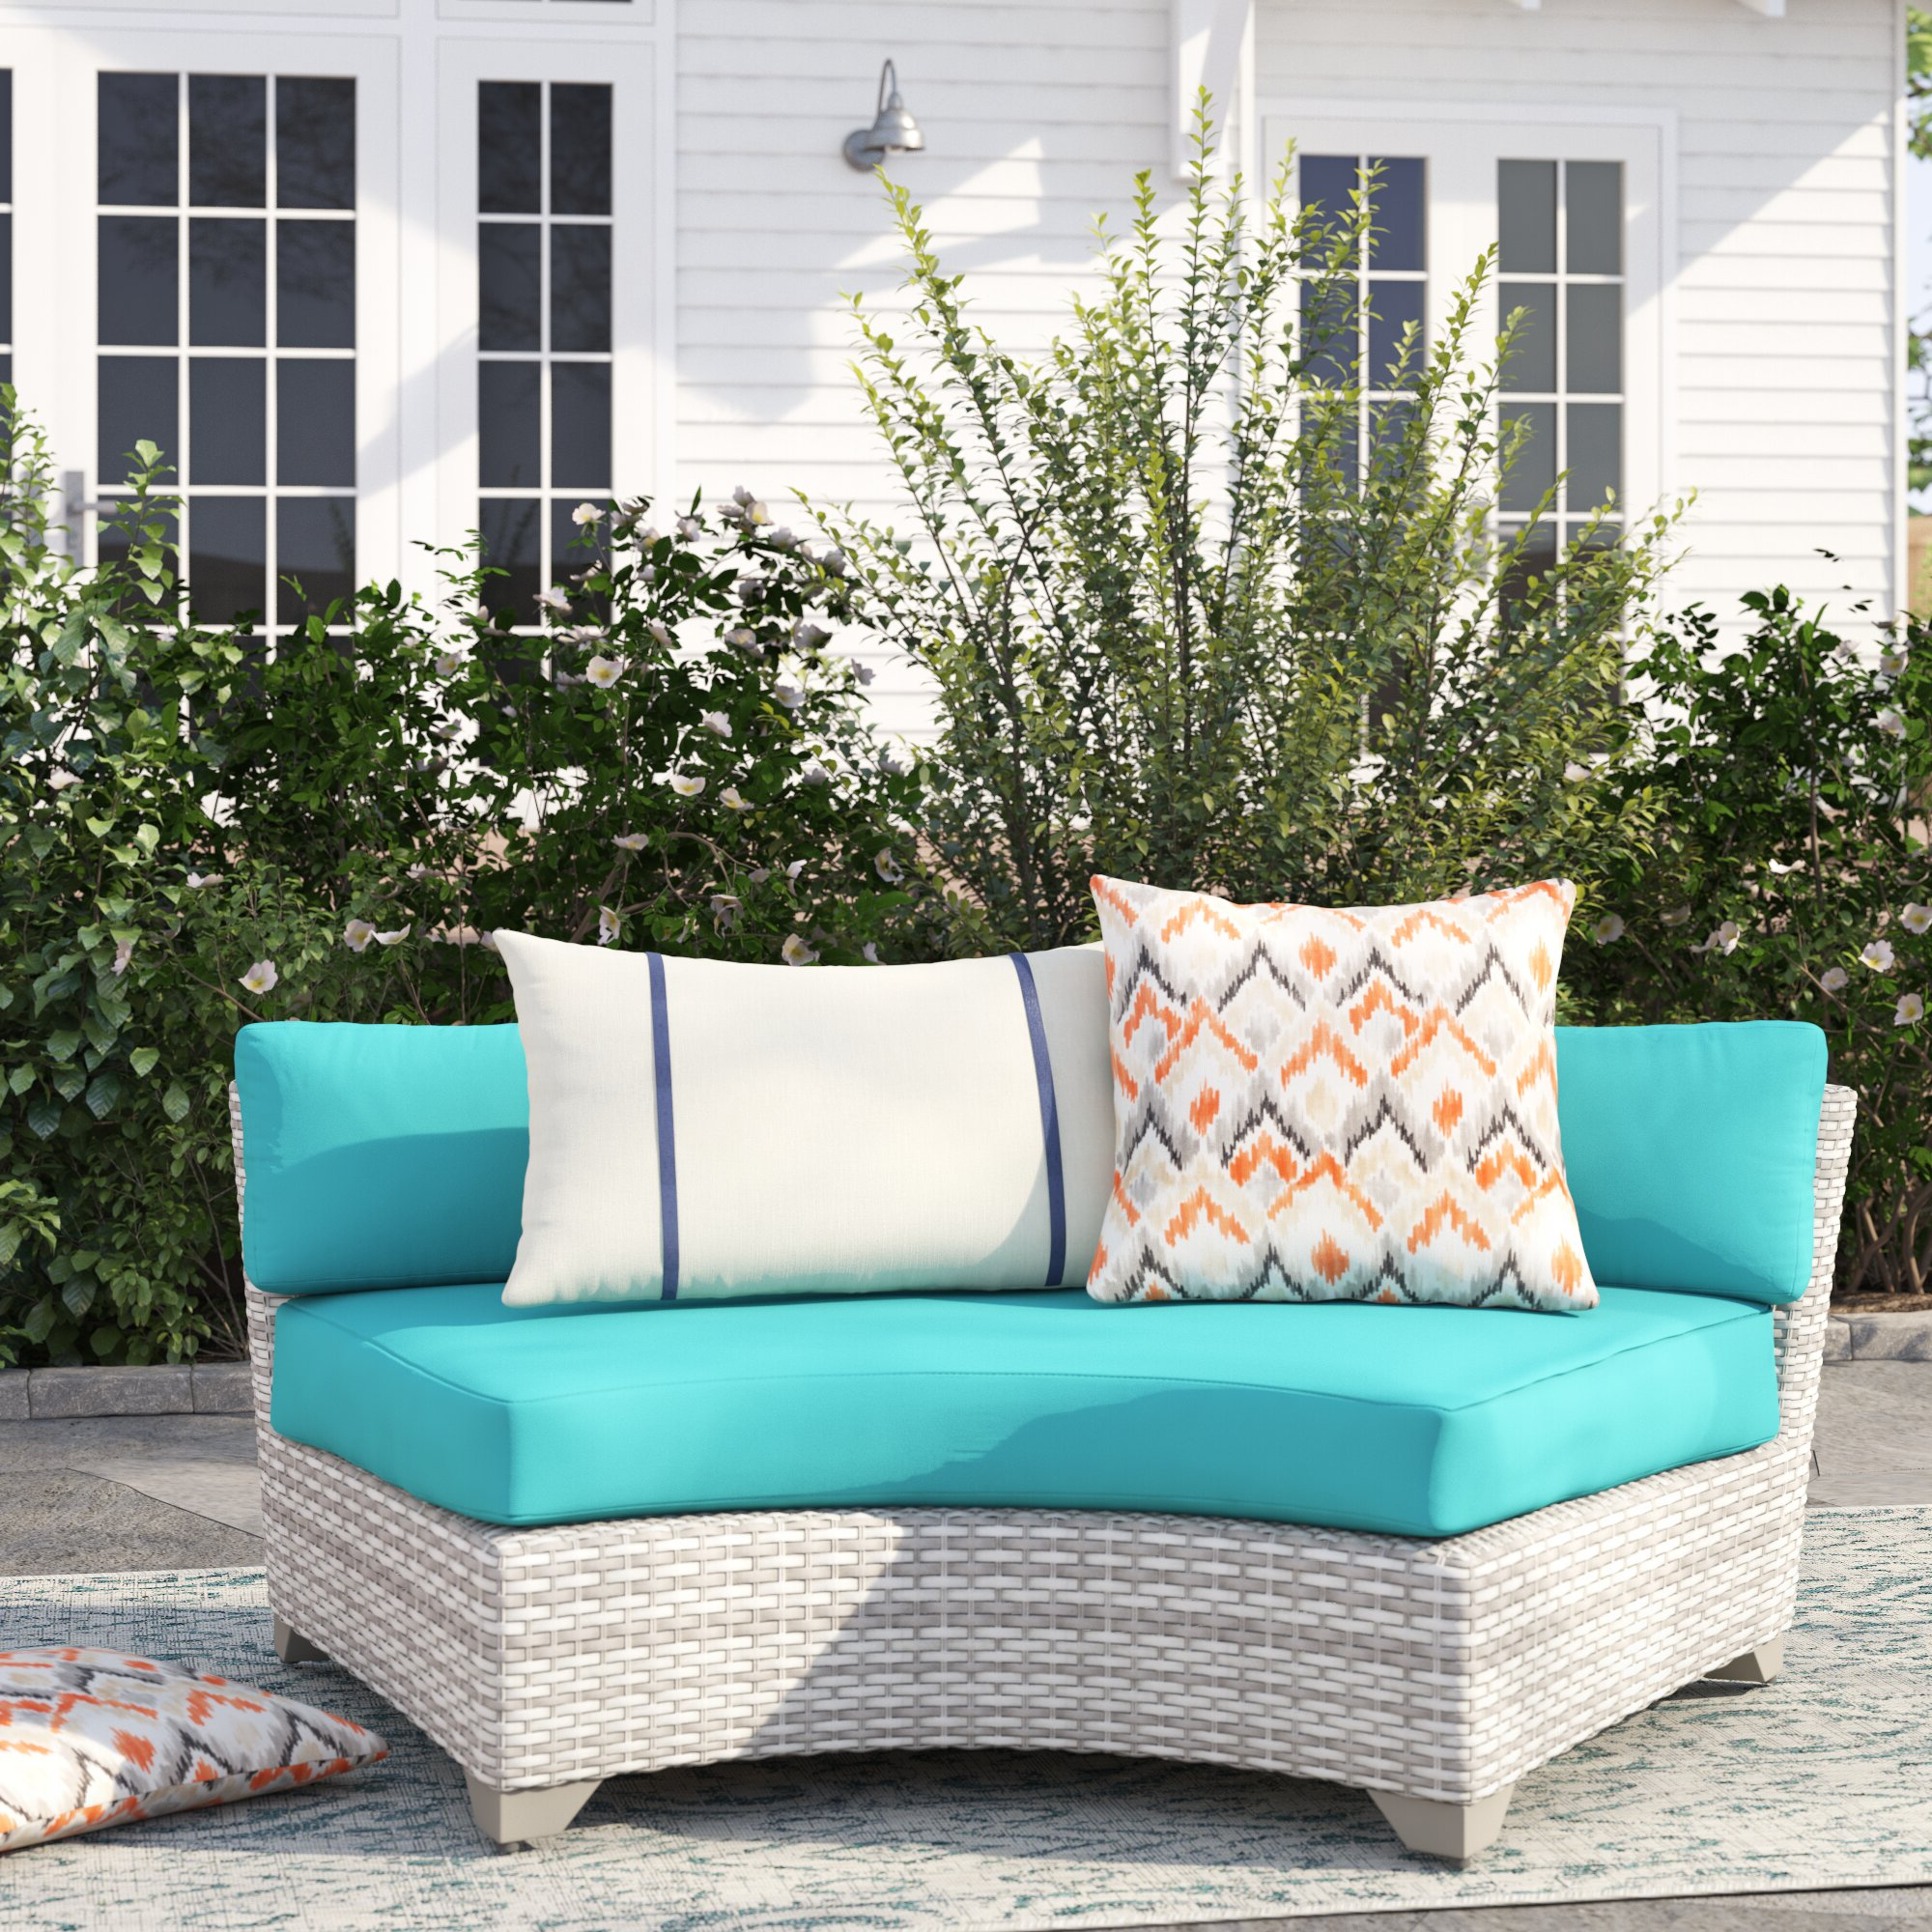 Menifee Loveseats With Cushions Intended For Most Popular Falmouth Patio Sofa With Cushions (View 9 of 25)